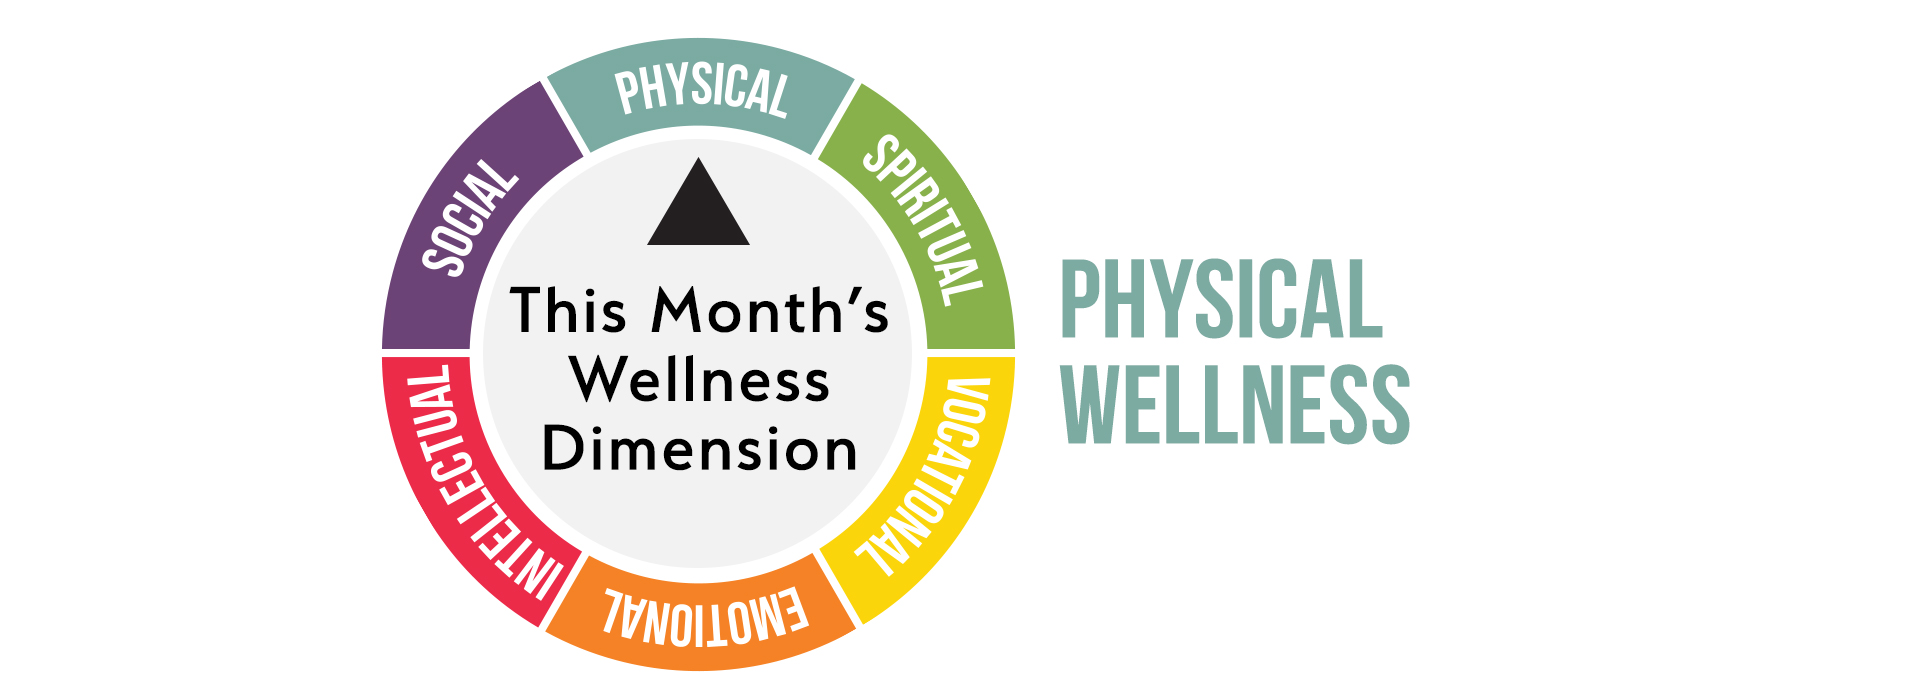 Keeping Up With The Wellness Dimensions: Physical Wellness